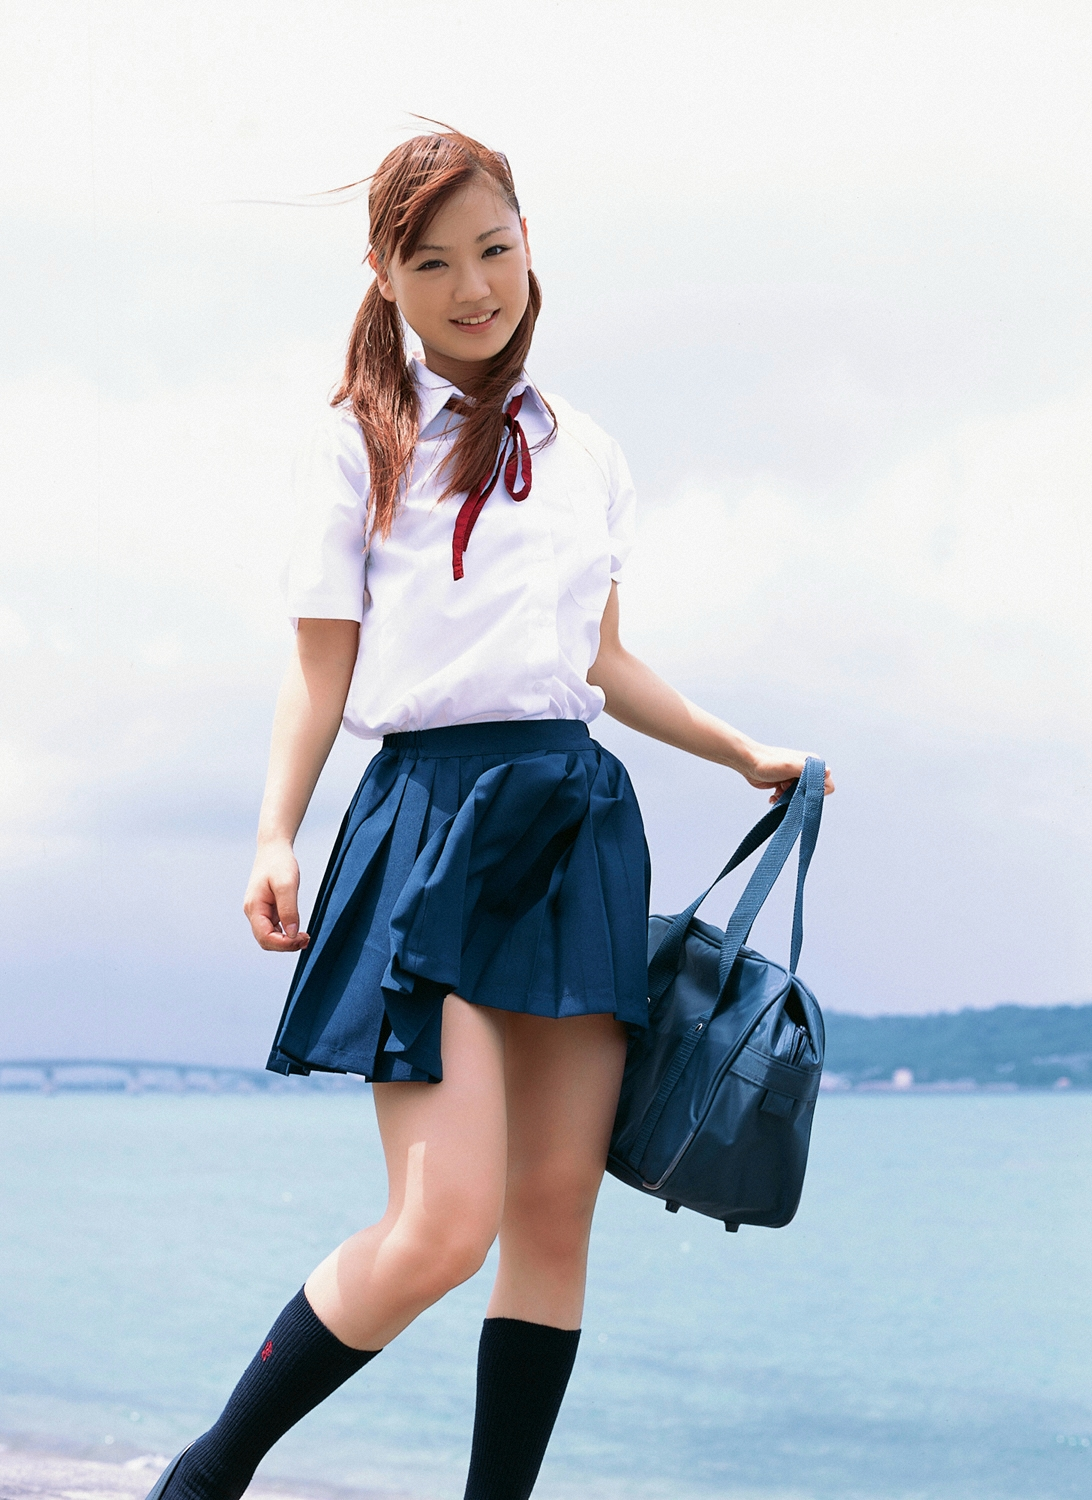 Cute Japanese School Girl Asami Tani - Thaifutboll,Mikas Hot Men,Gaythai,Thaigay,Khmer Gay,-5641